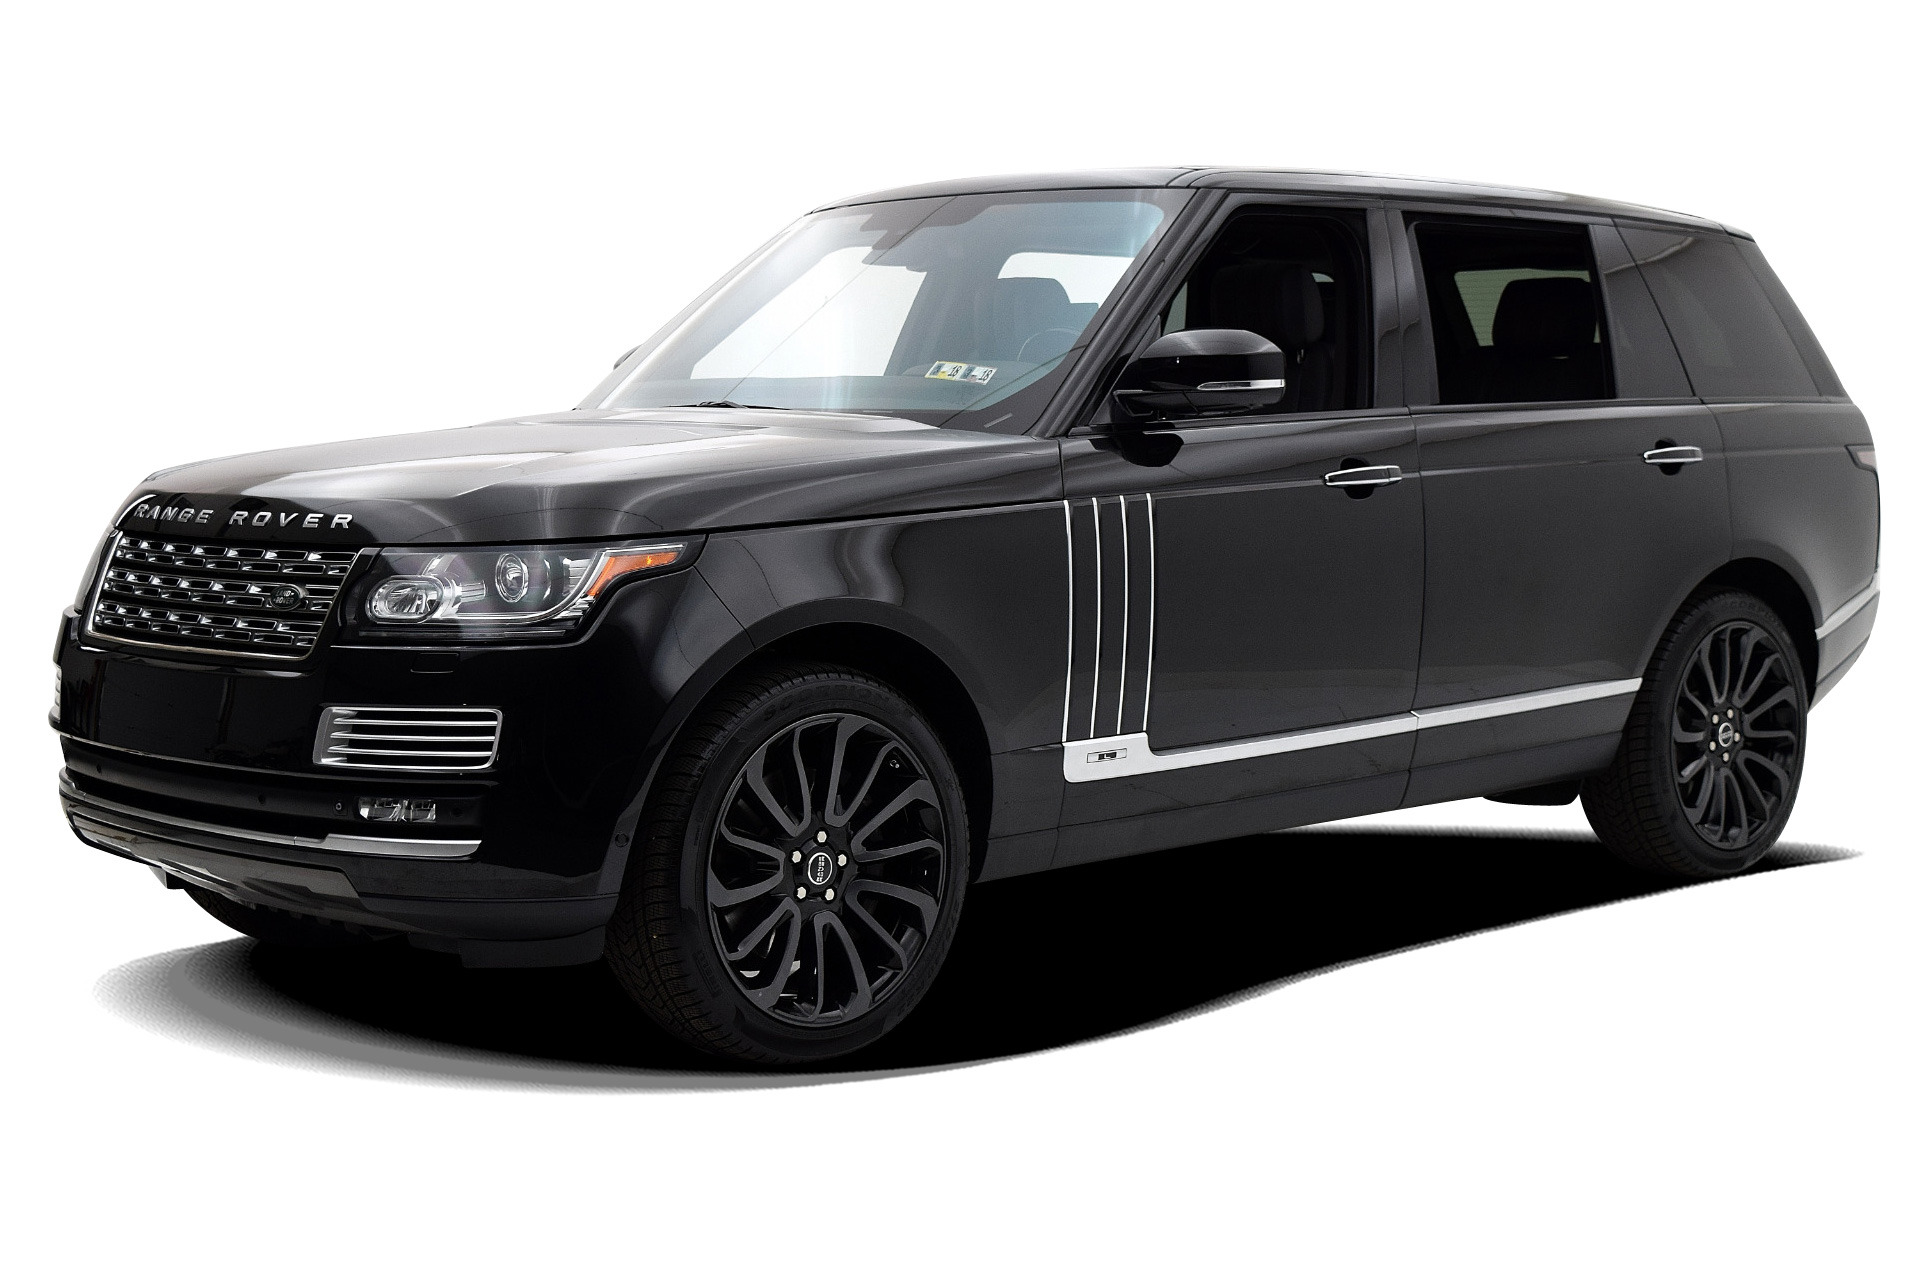 2015 Land Rover Range Rover Autobiography Black LWB